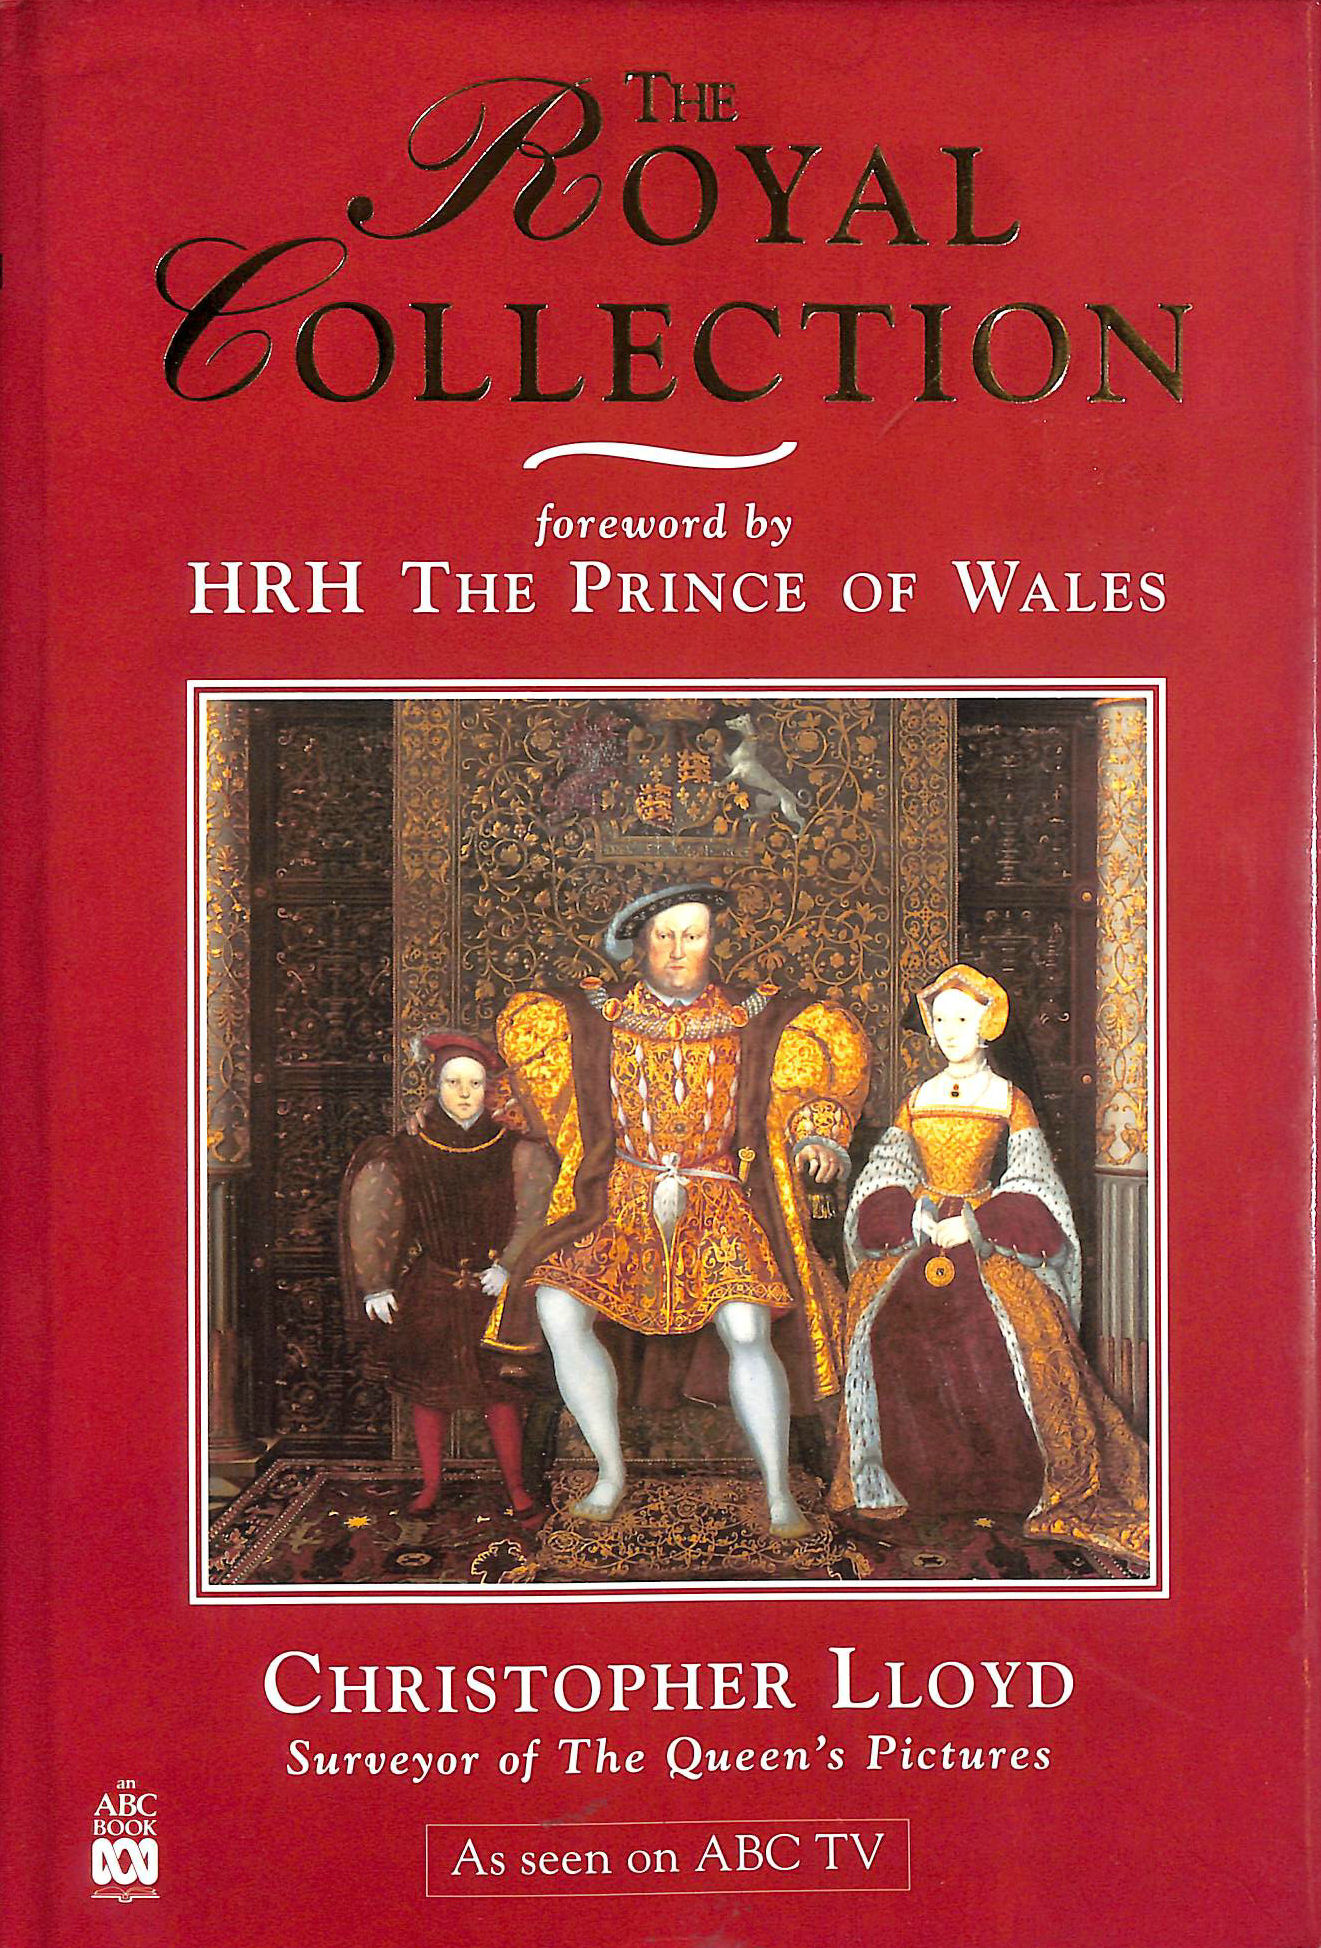 Image for The Royal Collection: A Thematic Exploration of the Paintings in the Collection of Her Majesty the Queen